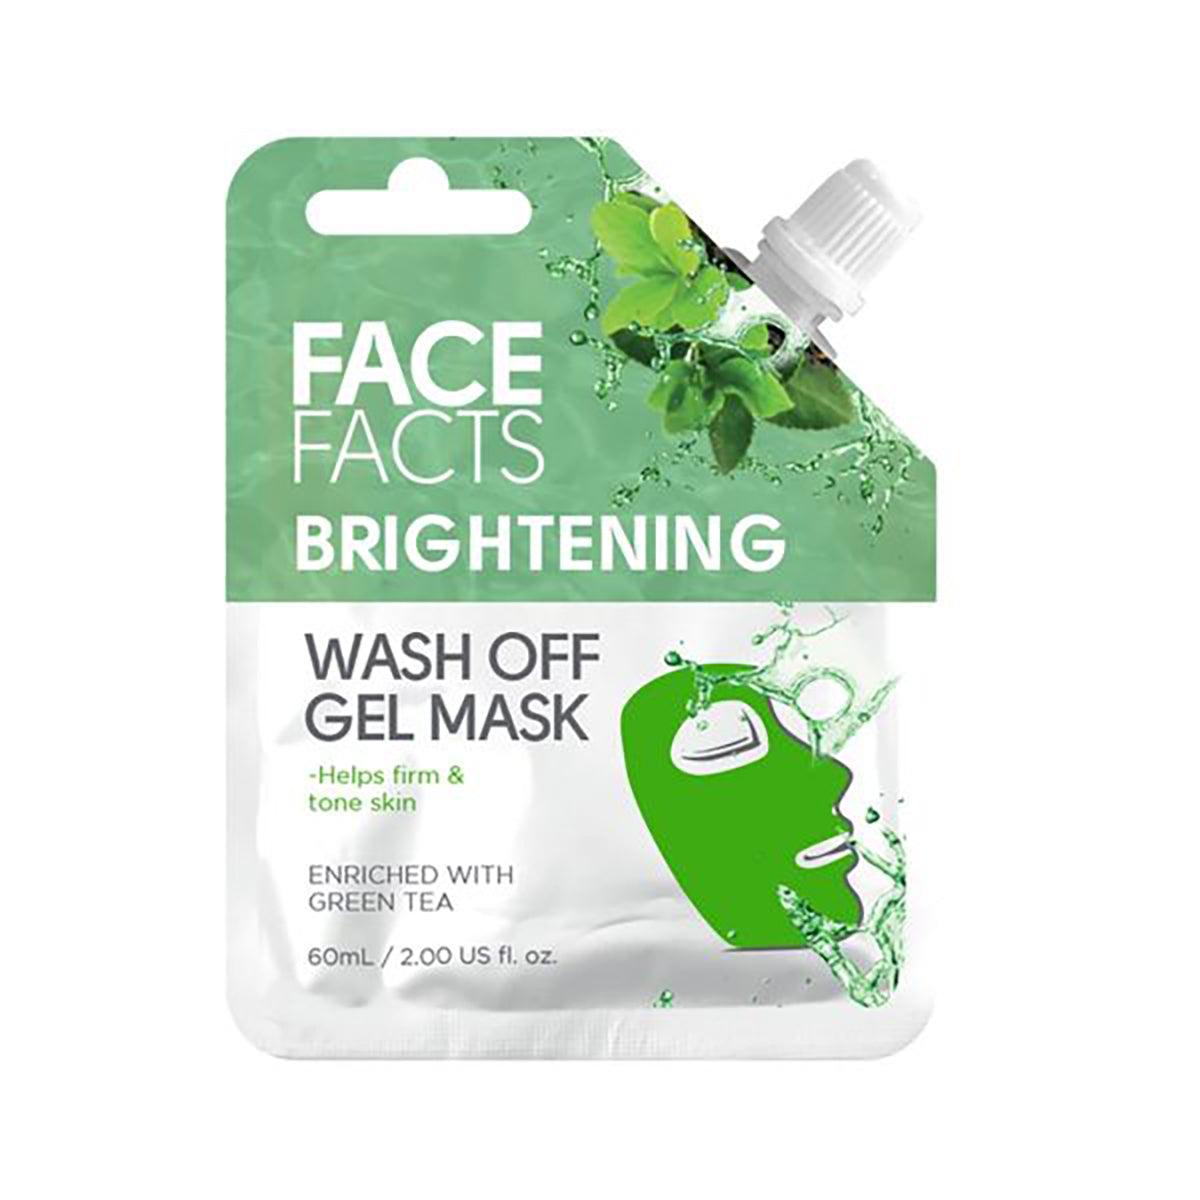 Face Facts Brightening Wash off Mask